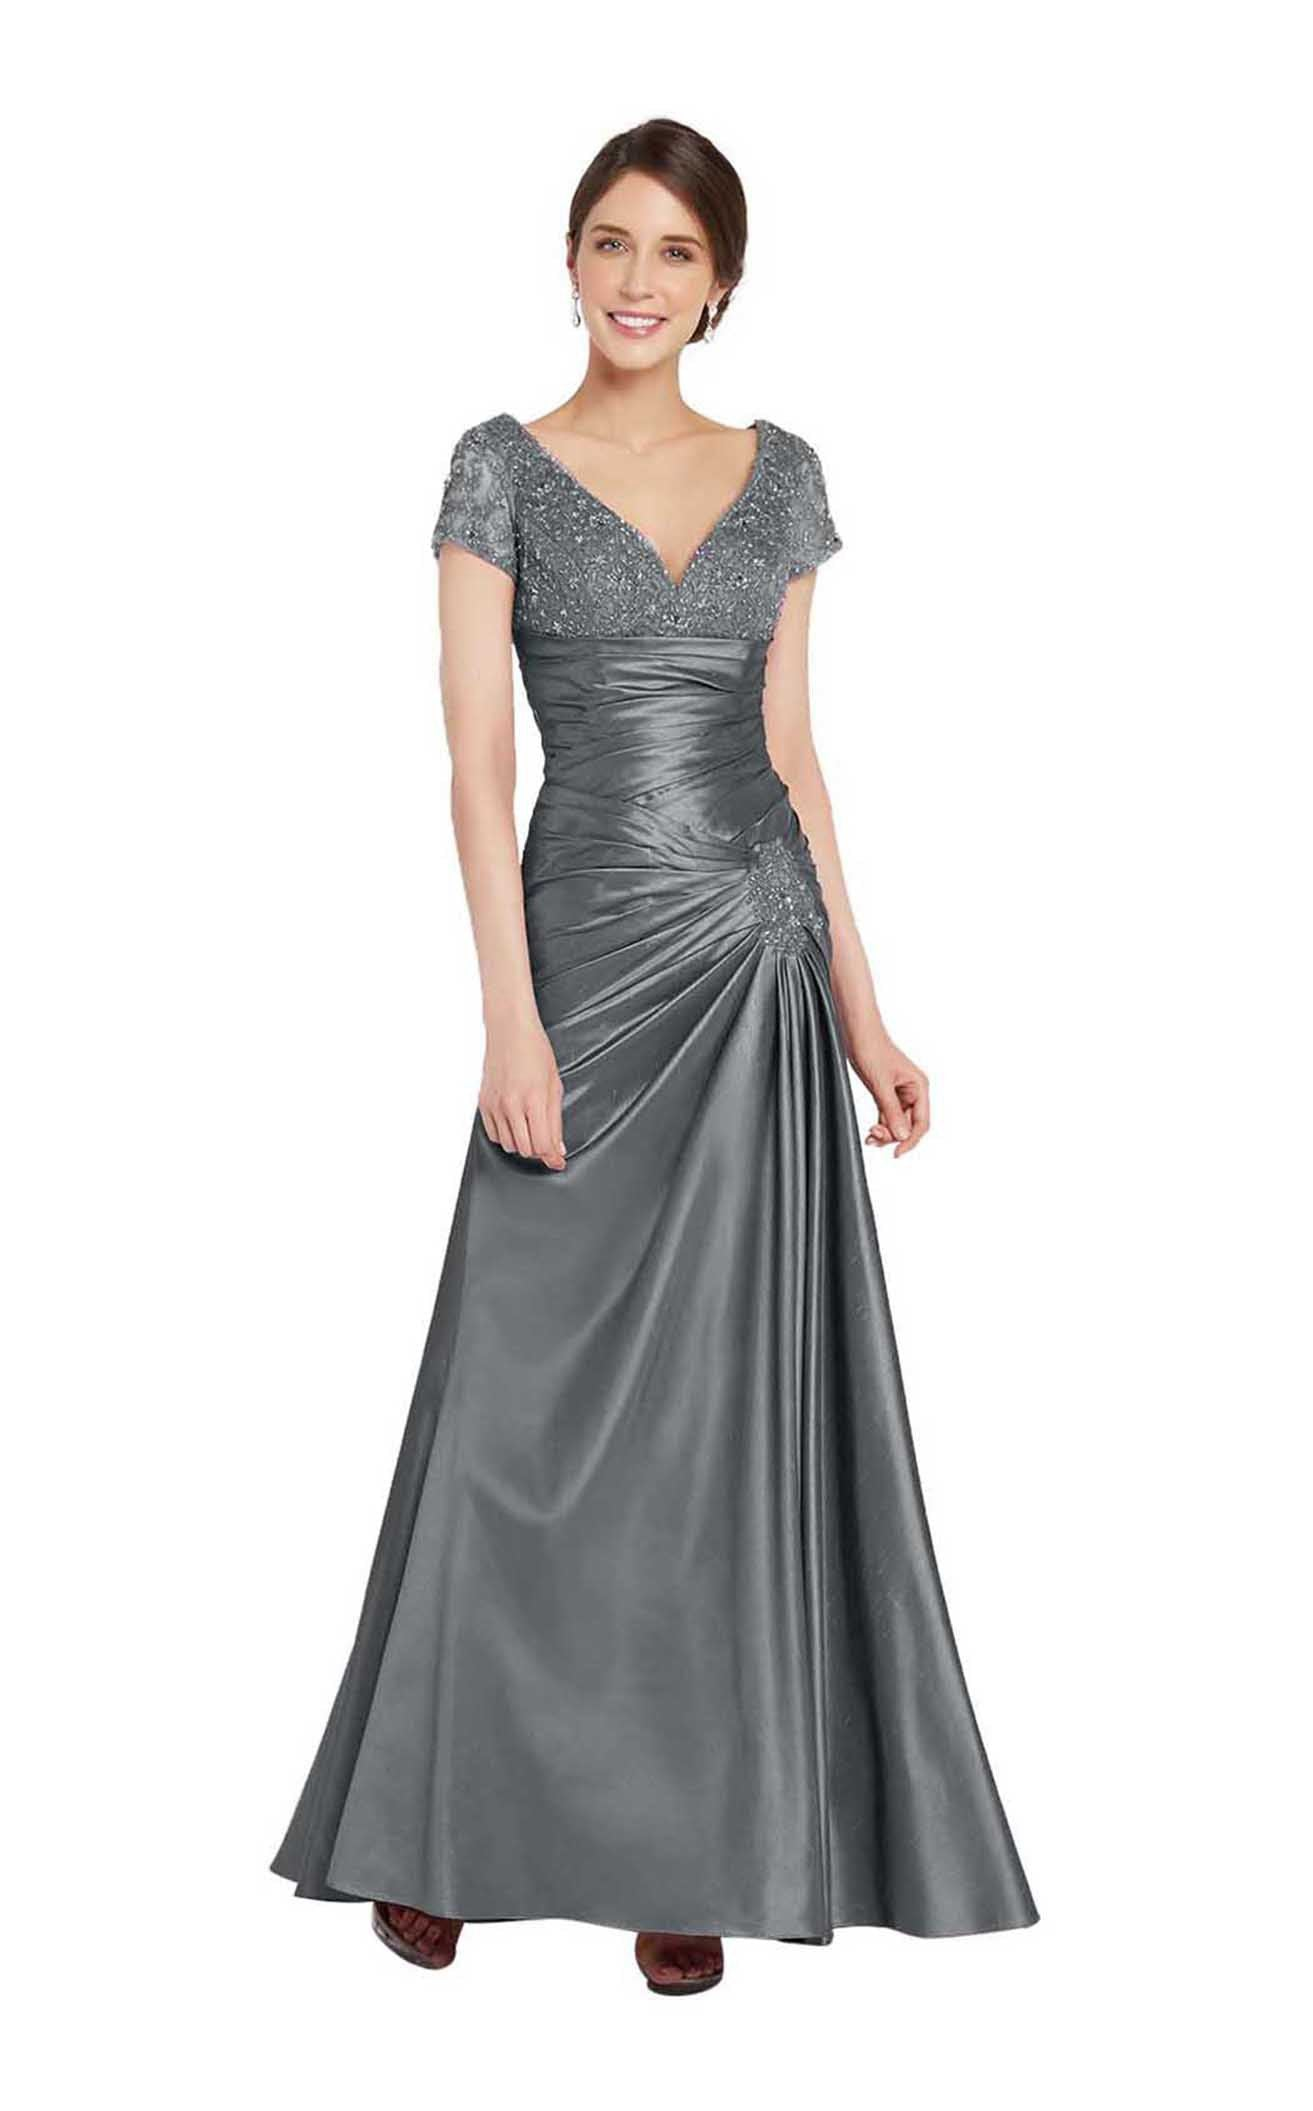 Alyce Paris 29357 Cap Sleeve Lace Ornate Empire Trumpet Gown - 2 pcs Pewter In Size 16 and 24 Available